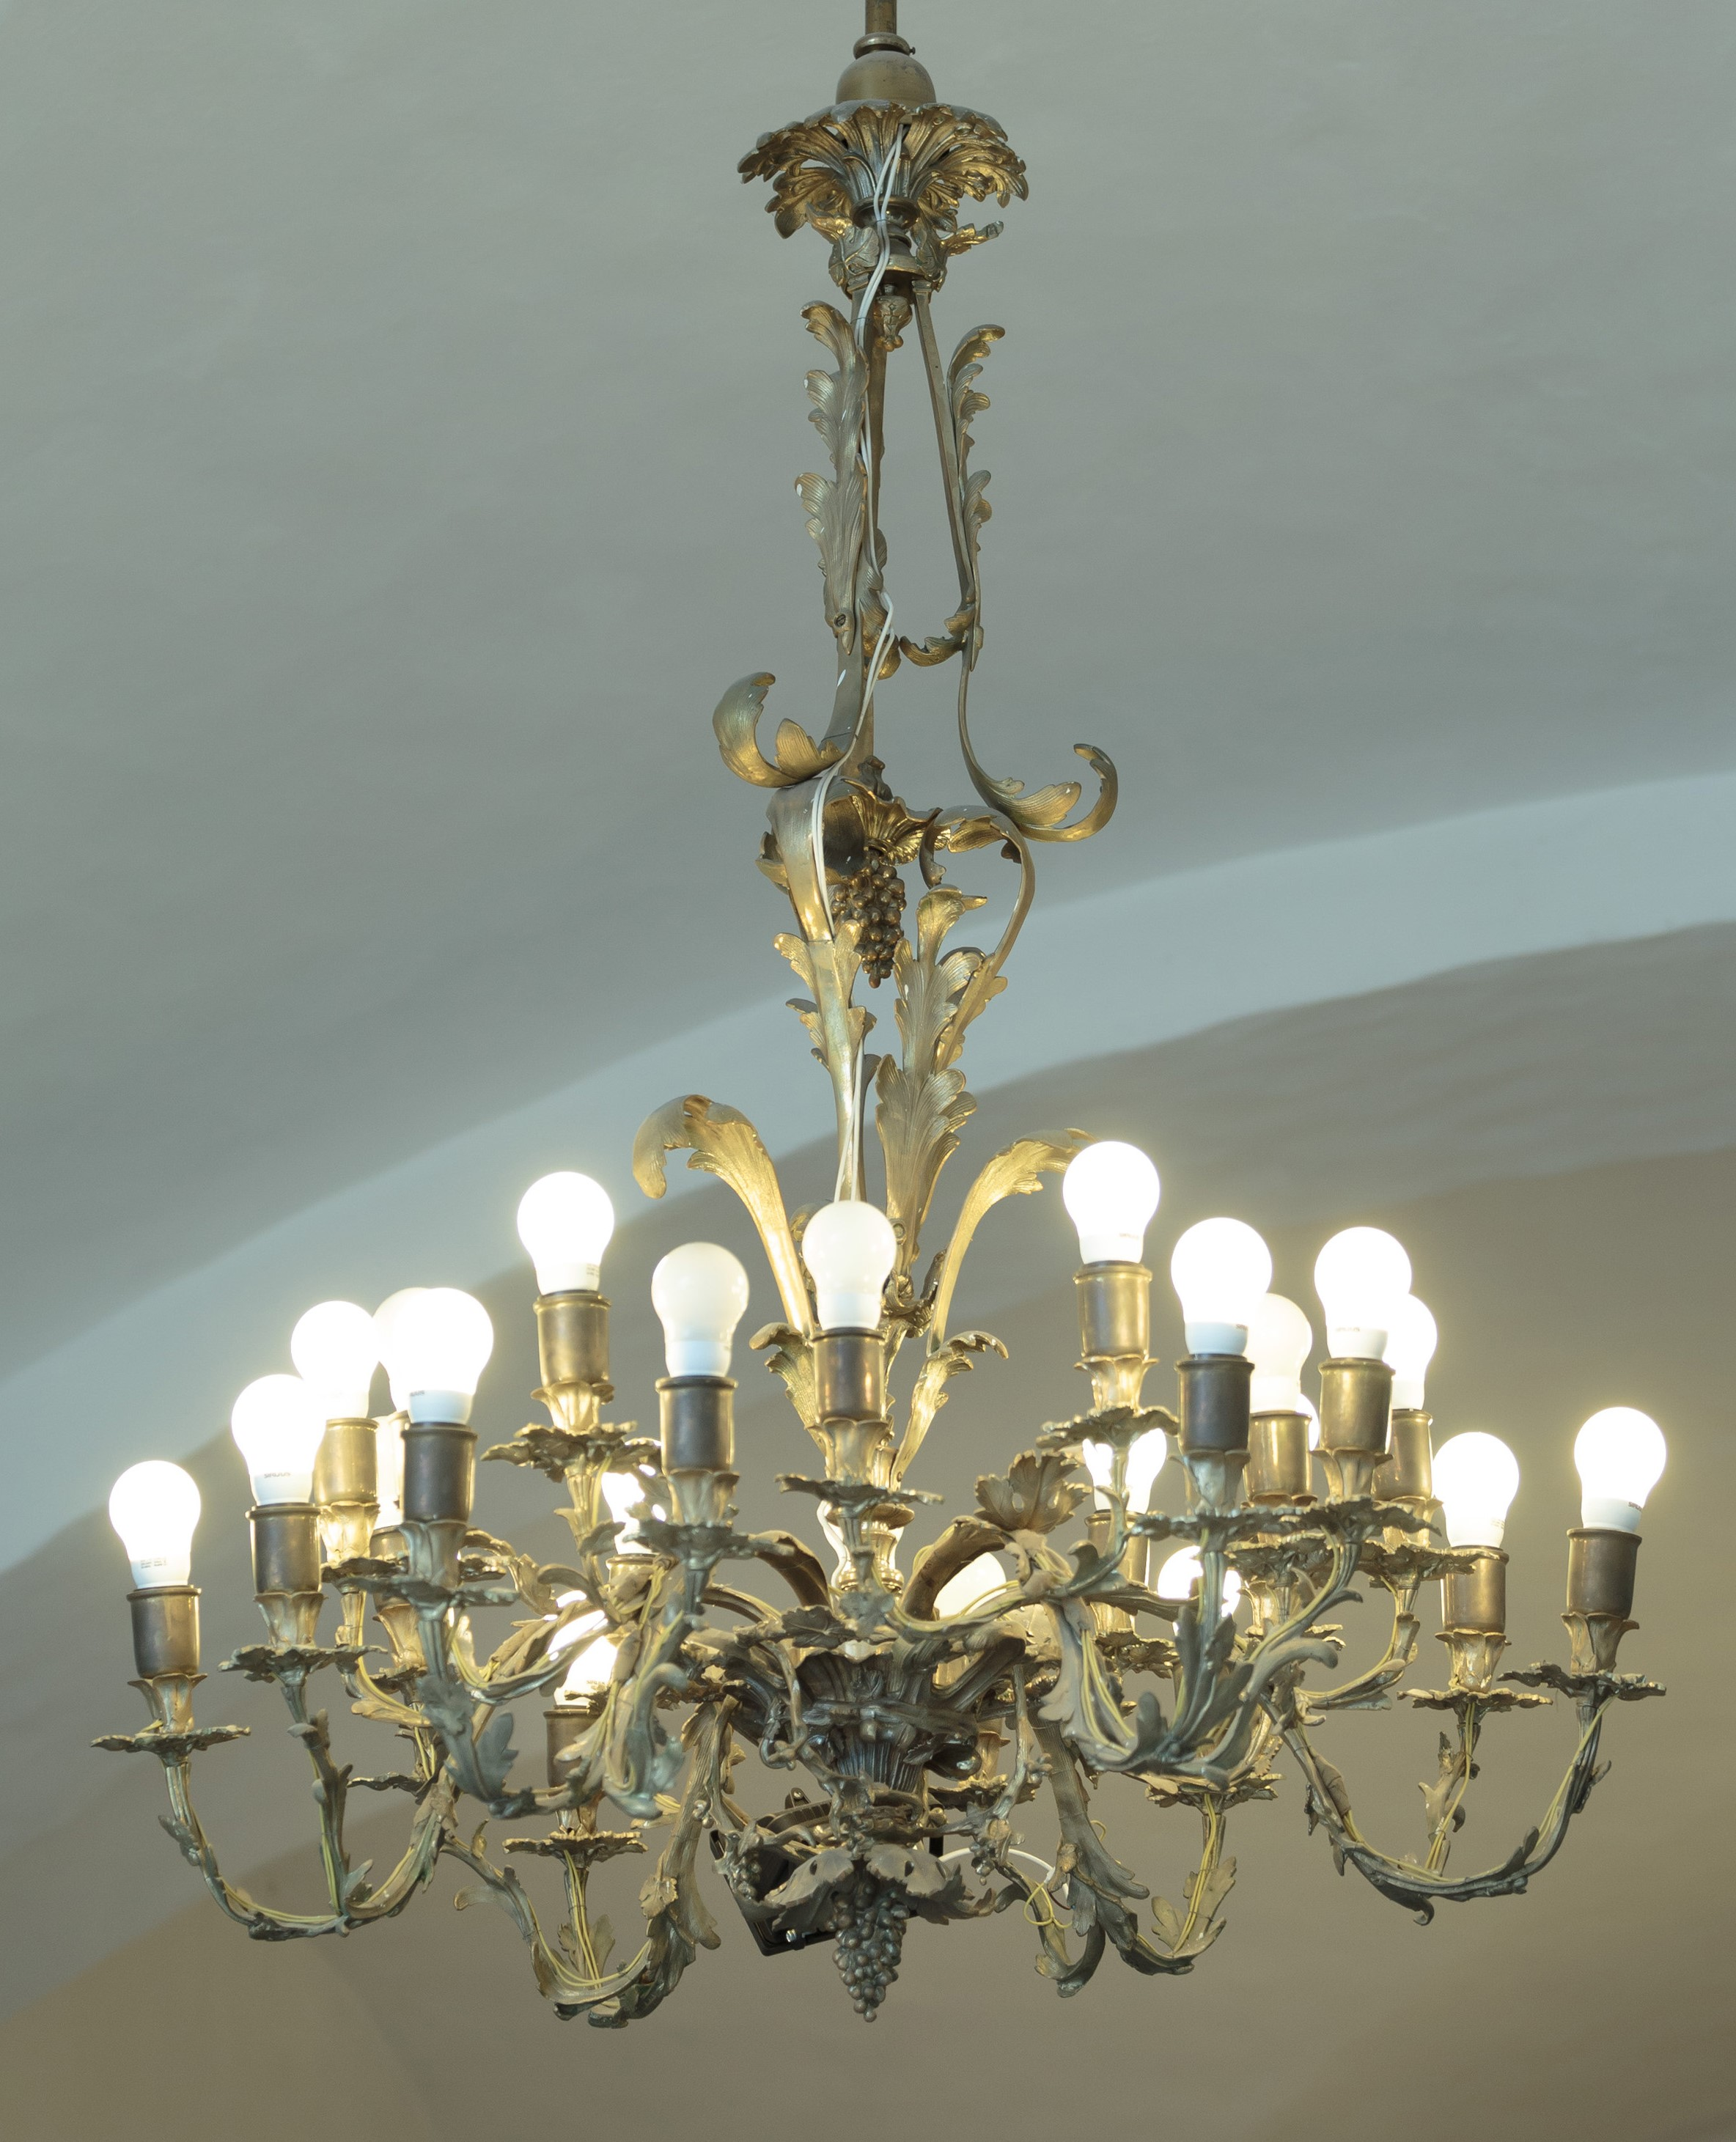 Chandelier, 1750–1774, National Museum of Lithuania, IM-4620. Photo by Tomas Kapočius, 2017